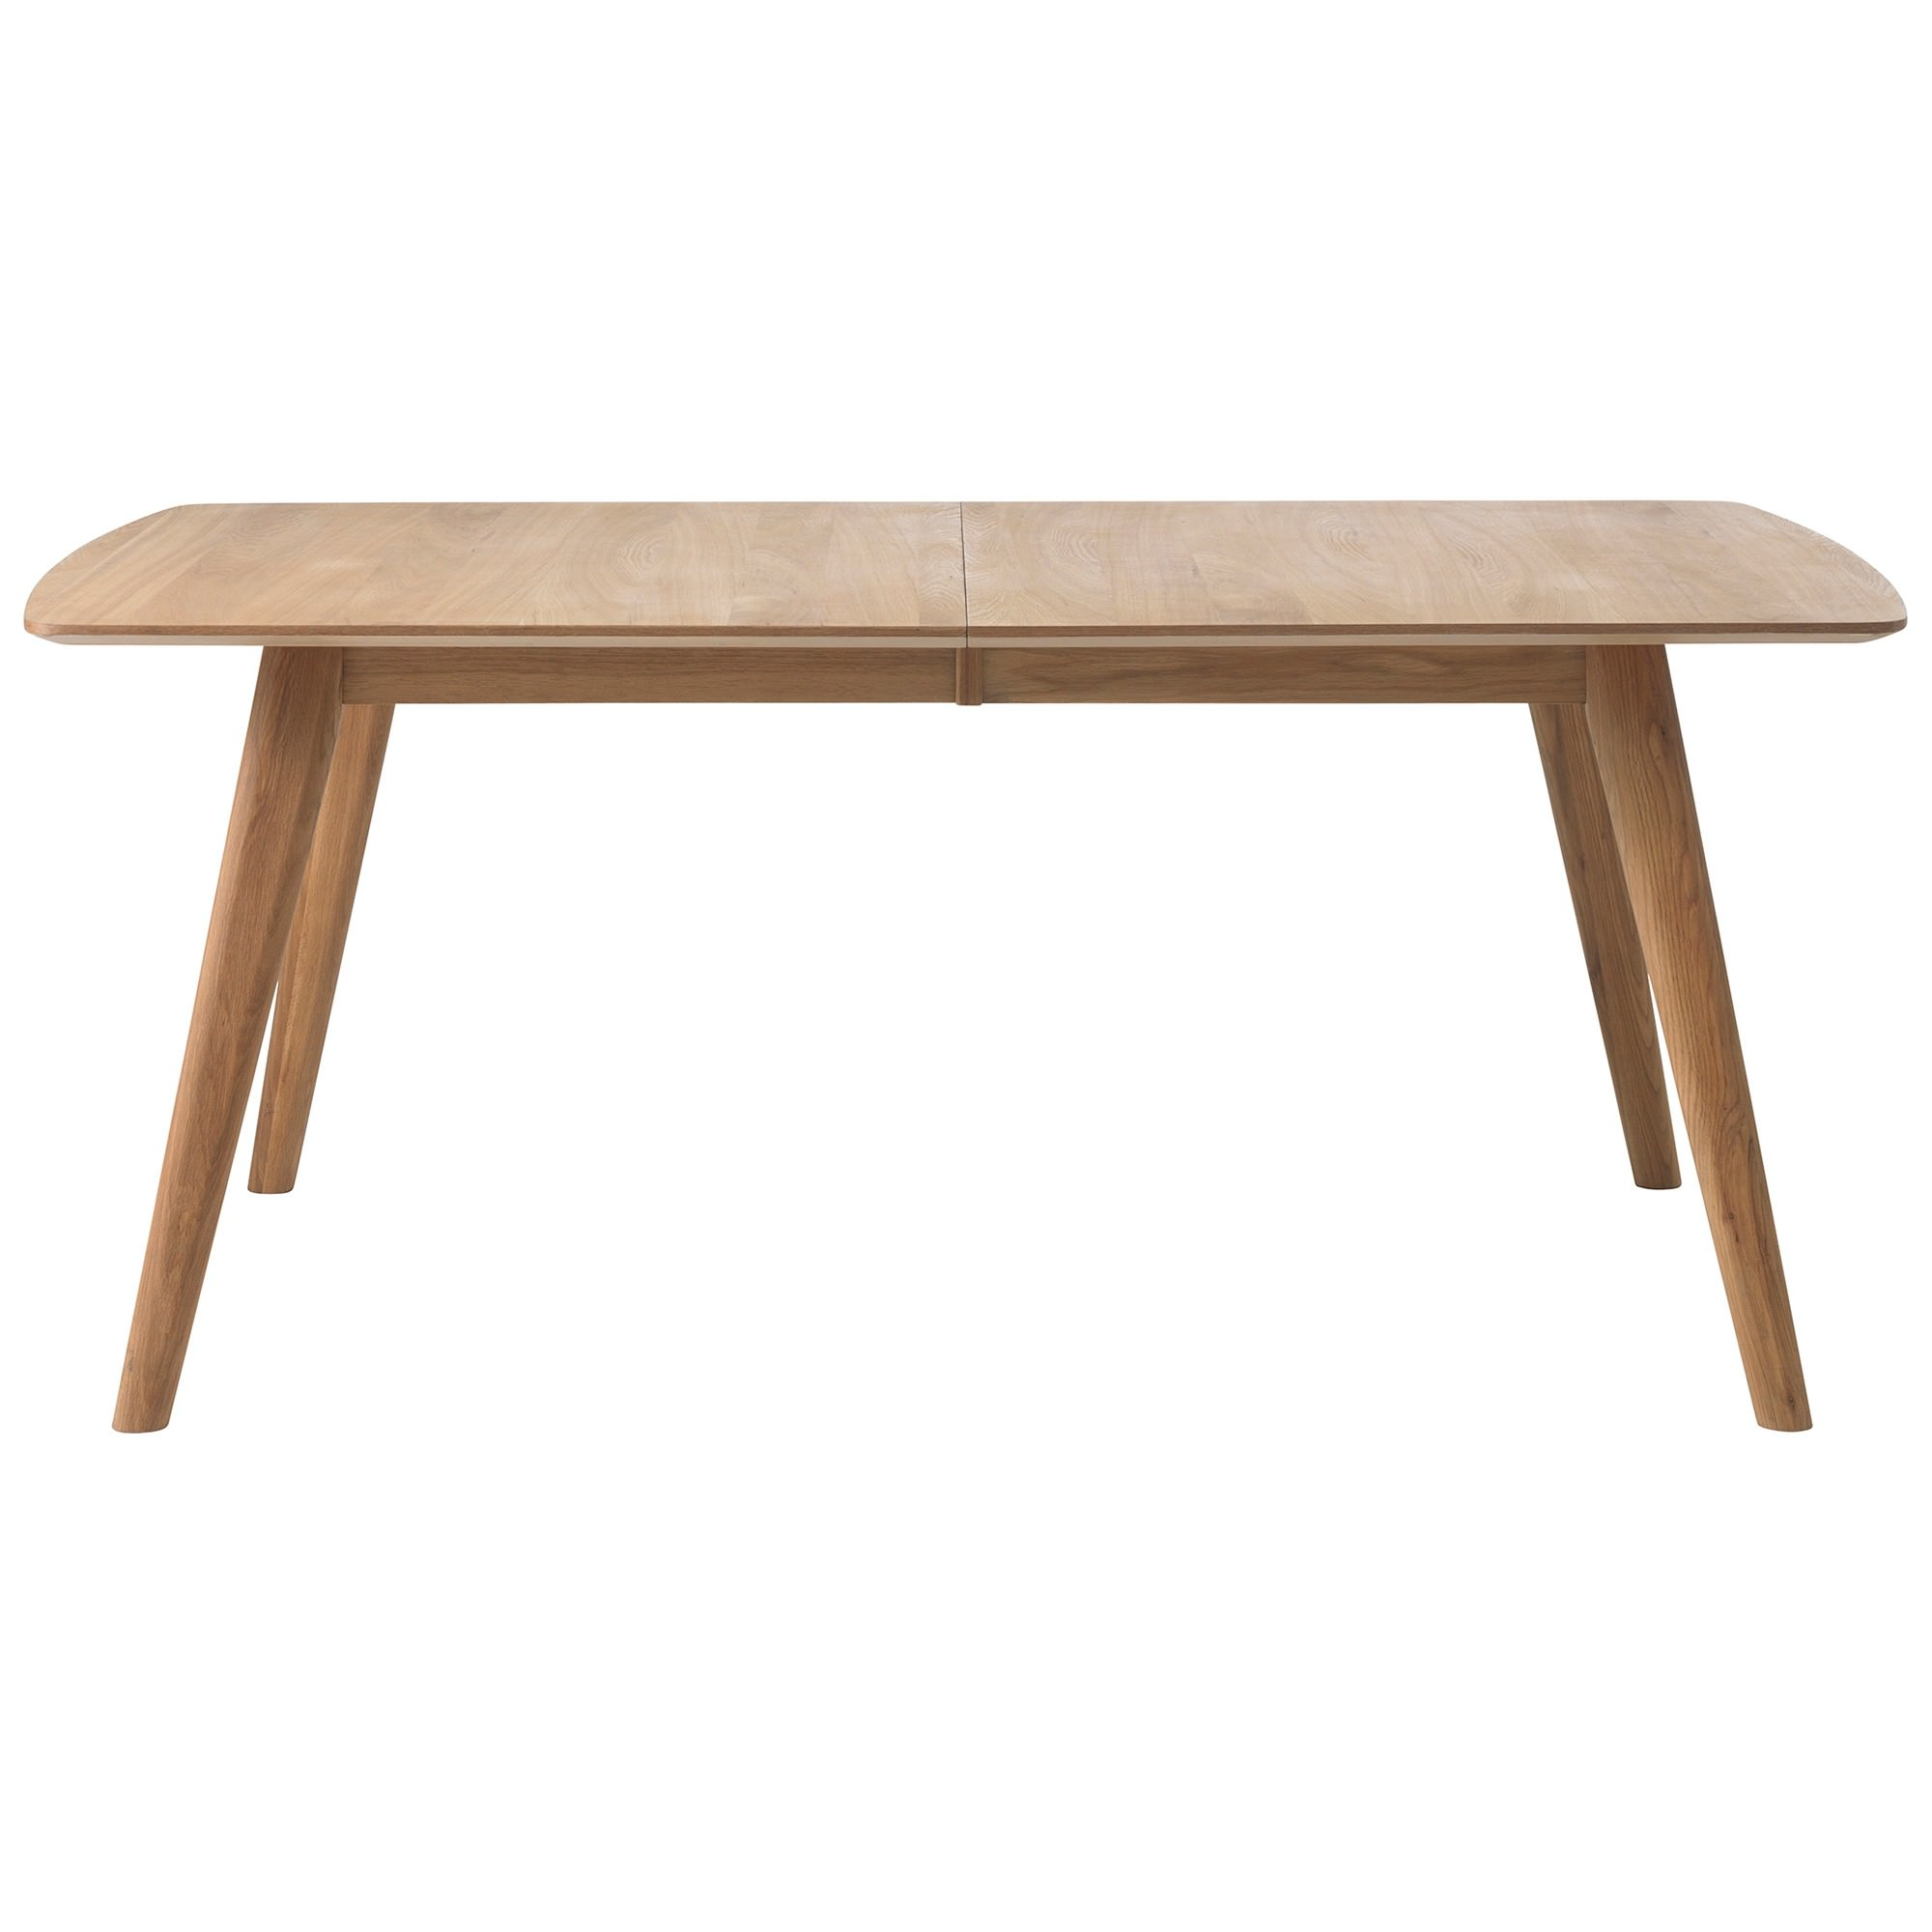 Jarel Oak Timber Extendable Dining Table, 180-270cm